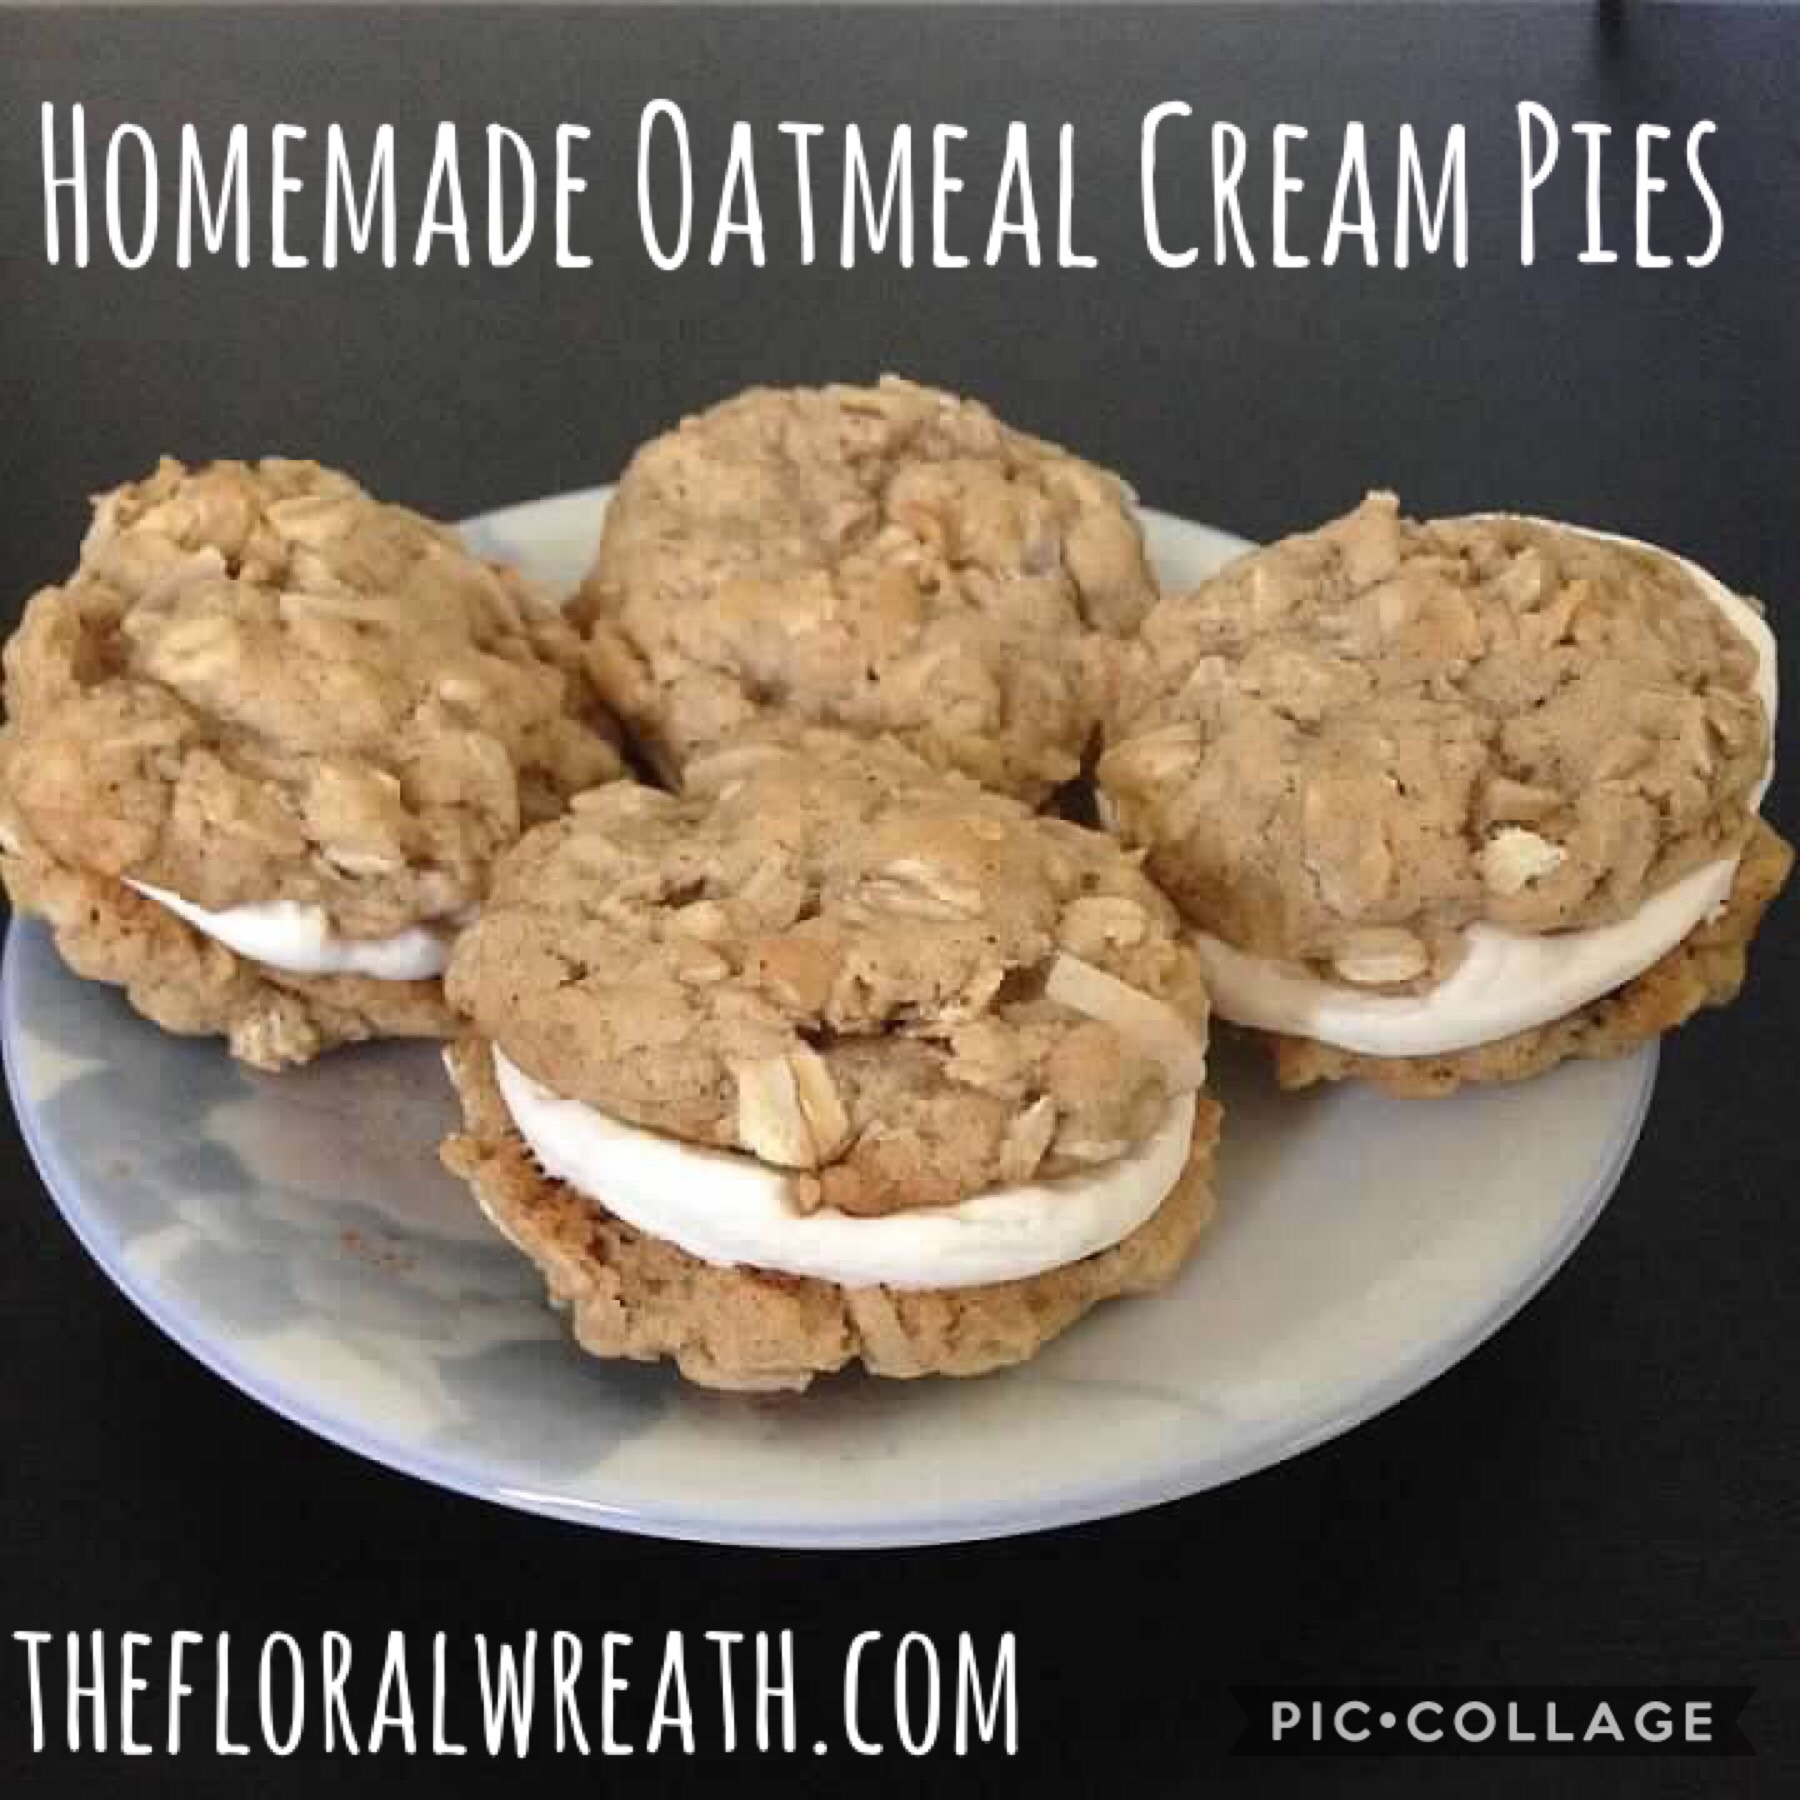 homemadeoatmealcreampies.JPG